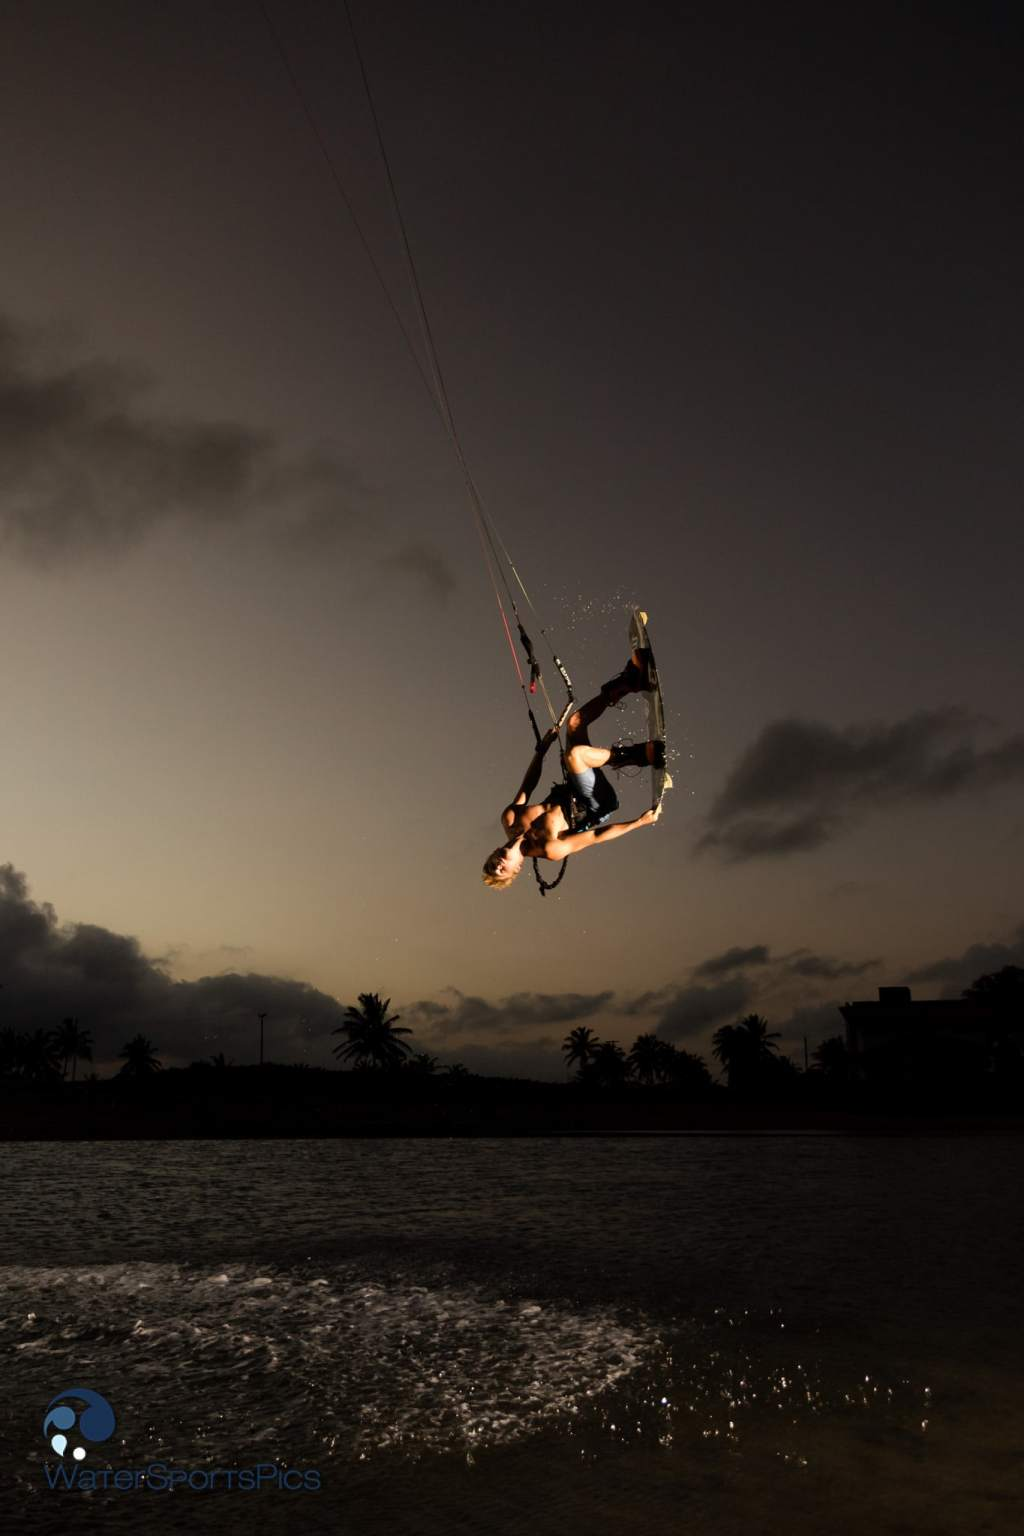 Flash session with Dylan van der Meij (Flysurfer/Jobe/Lip/Lifely/Versus) in Barra do Rio, Brazil on 15 November 2014